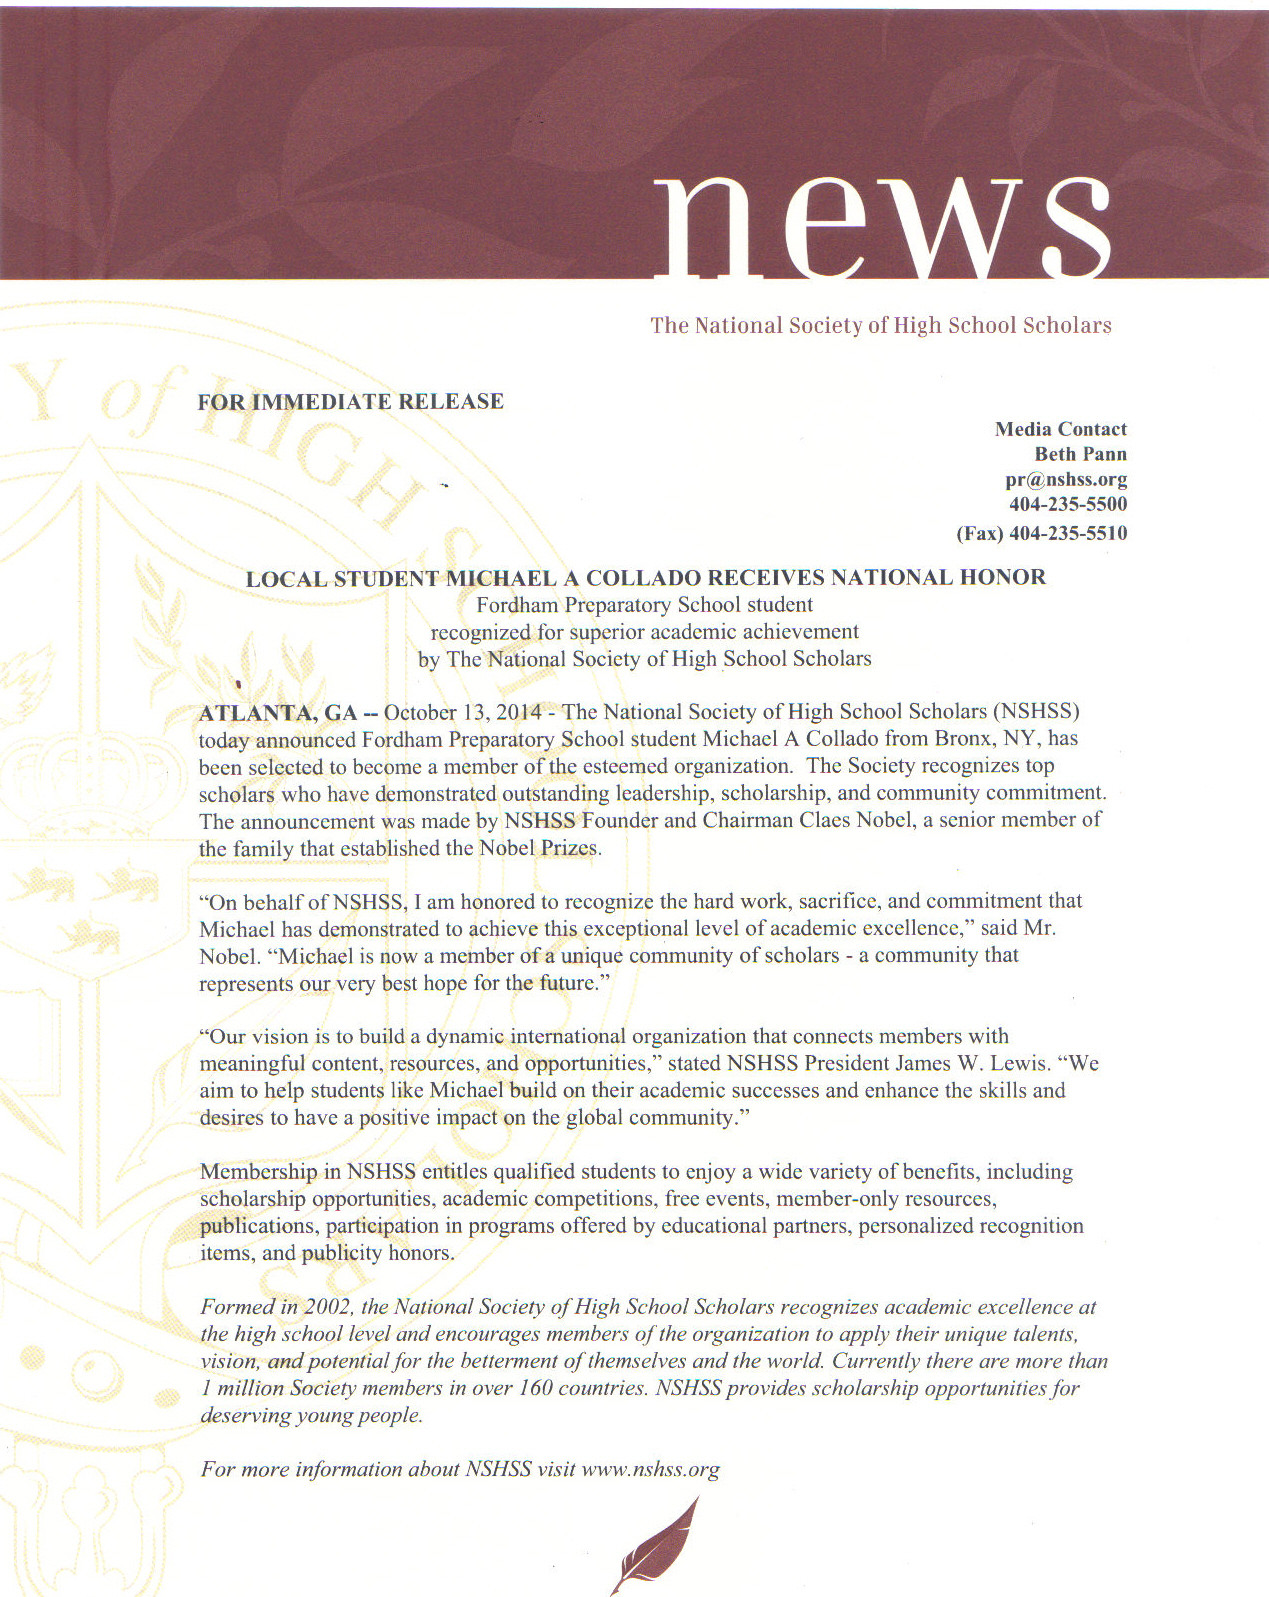 National Society of High School Scholars press release